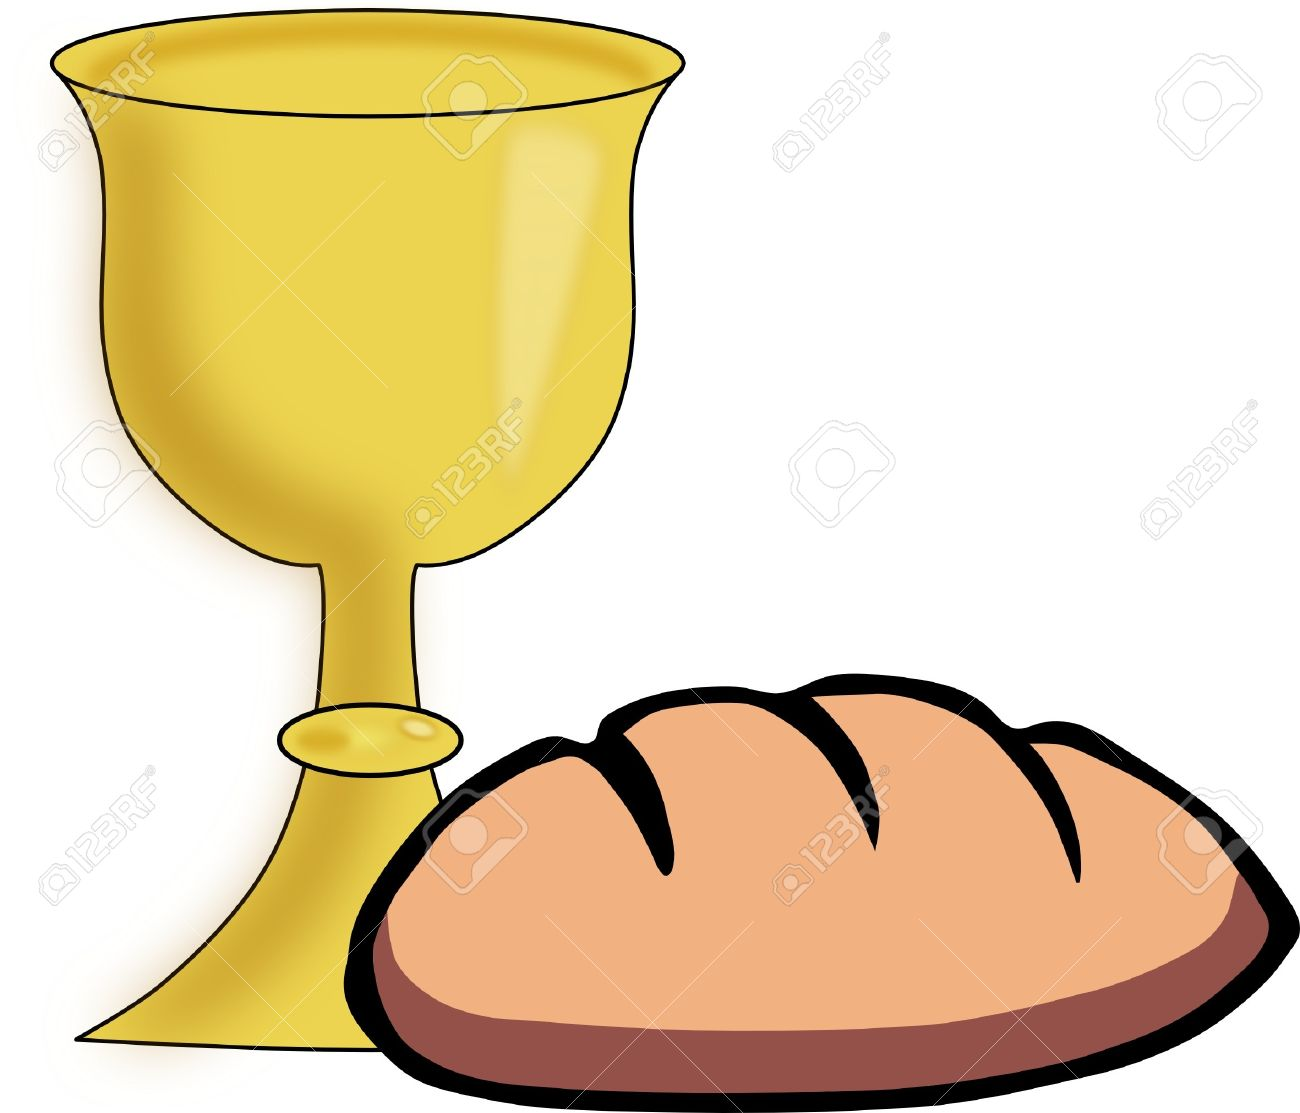 bread and chalice royalty free cliparts vectors and stock rh 123rf com clipart chalice with host clipart chalice with host